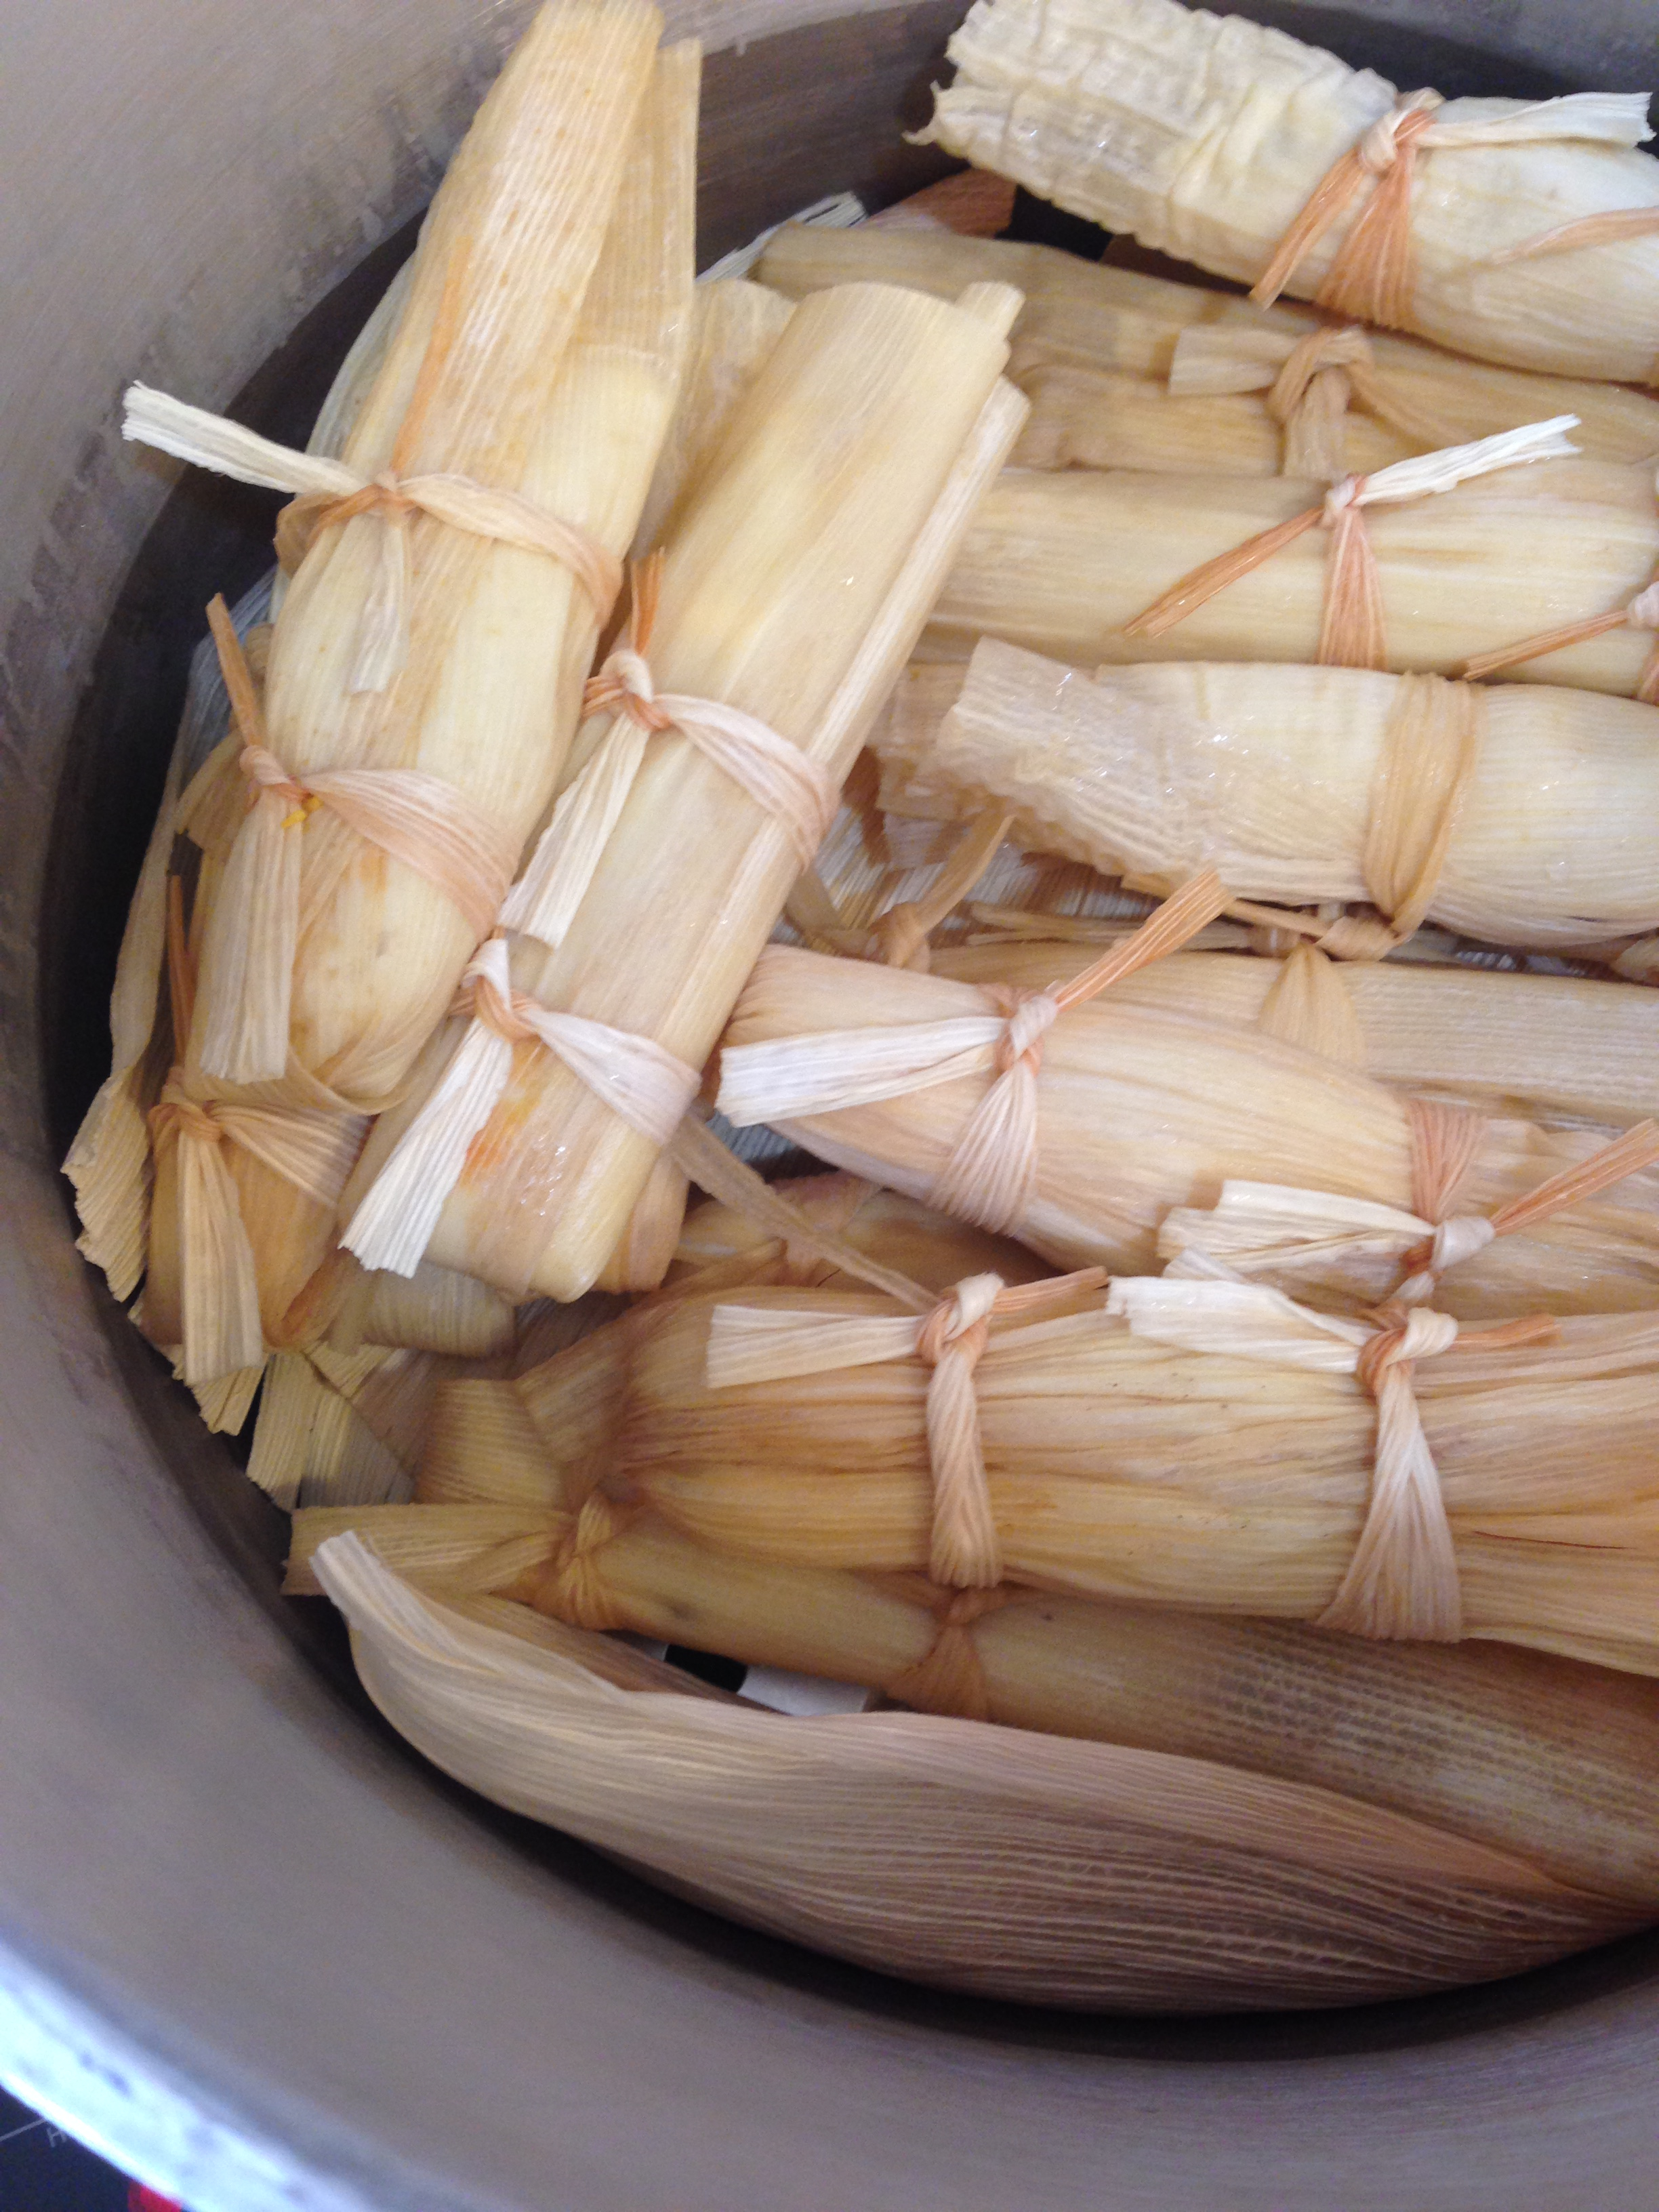 Tamales ready to steam in my pressure cooker/steamer I rigged up.